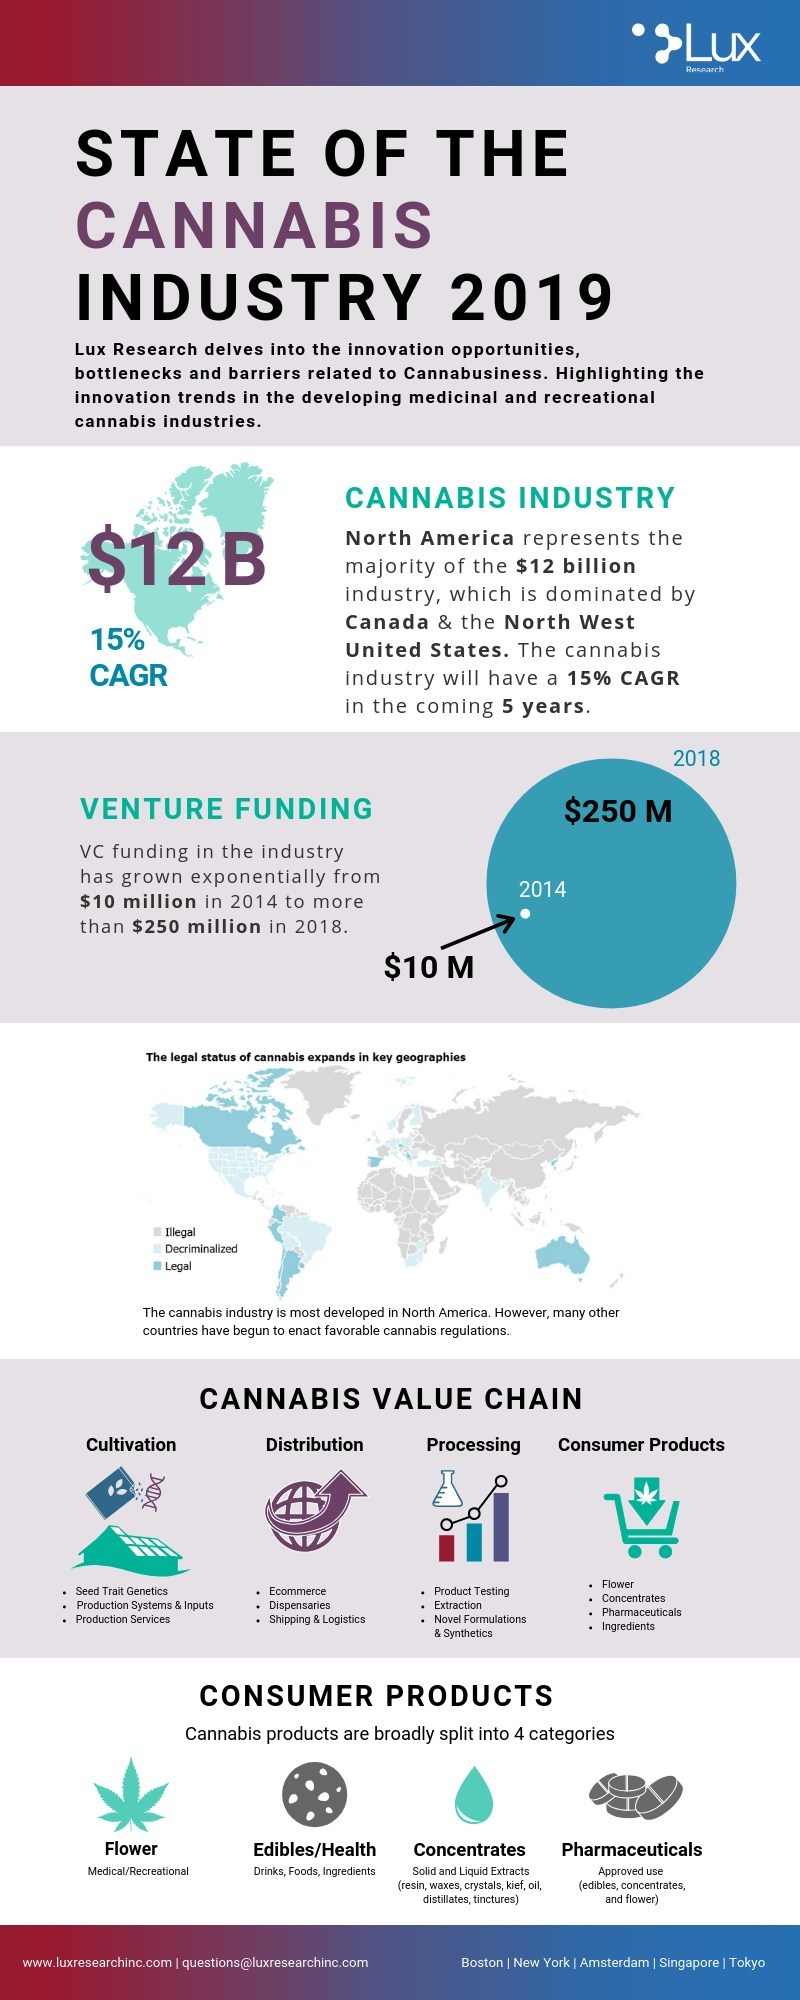 "Lux Research infographic highlighting the state of the cannabis industry illustrates finding from its new report ""Cannabusiness Innovation: Opportunities, Bottlenecks, and Barriers"""